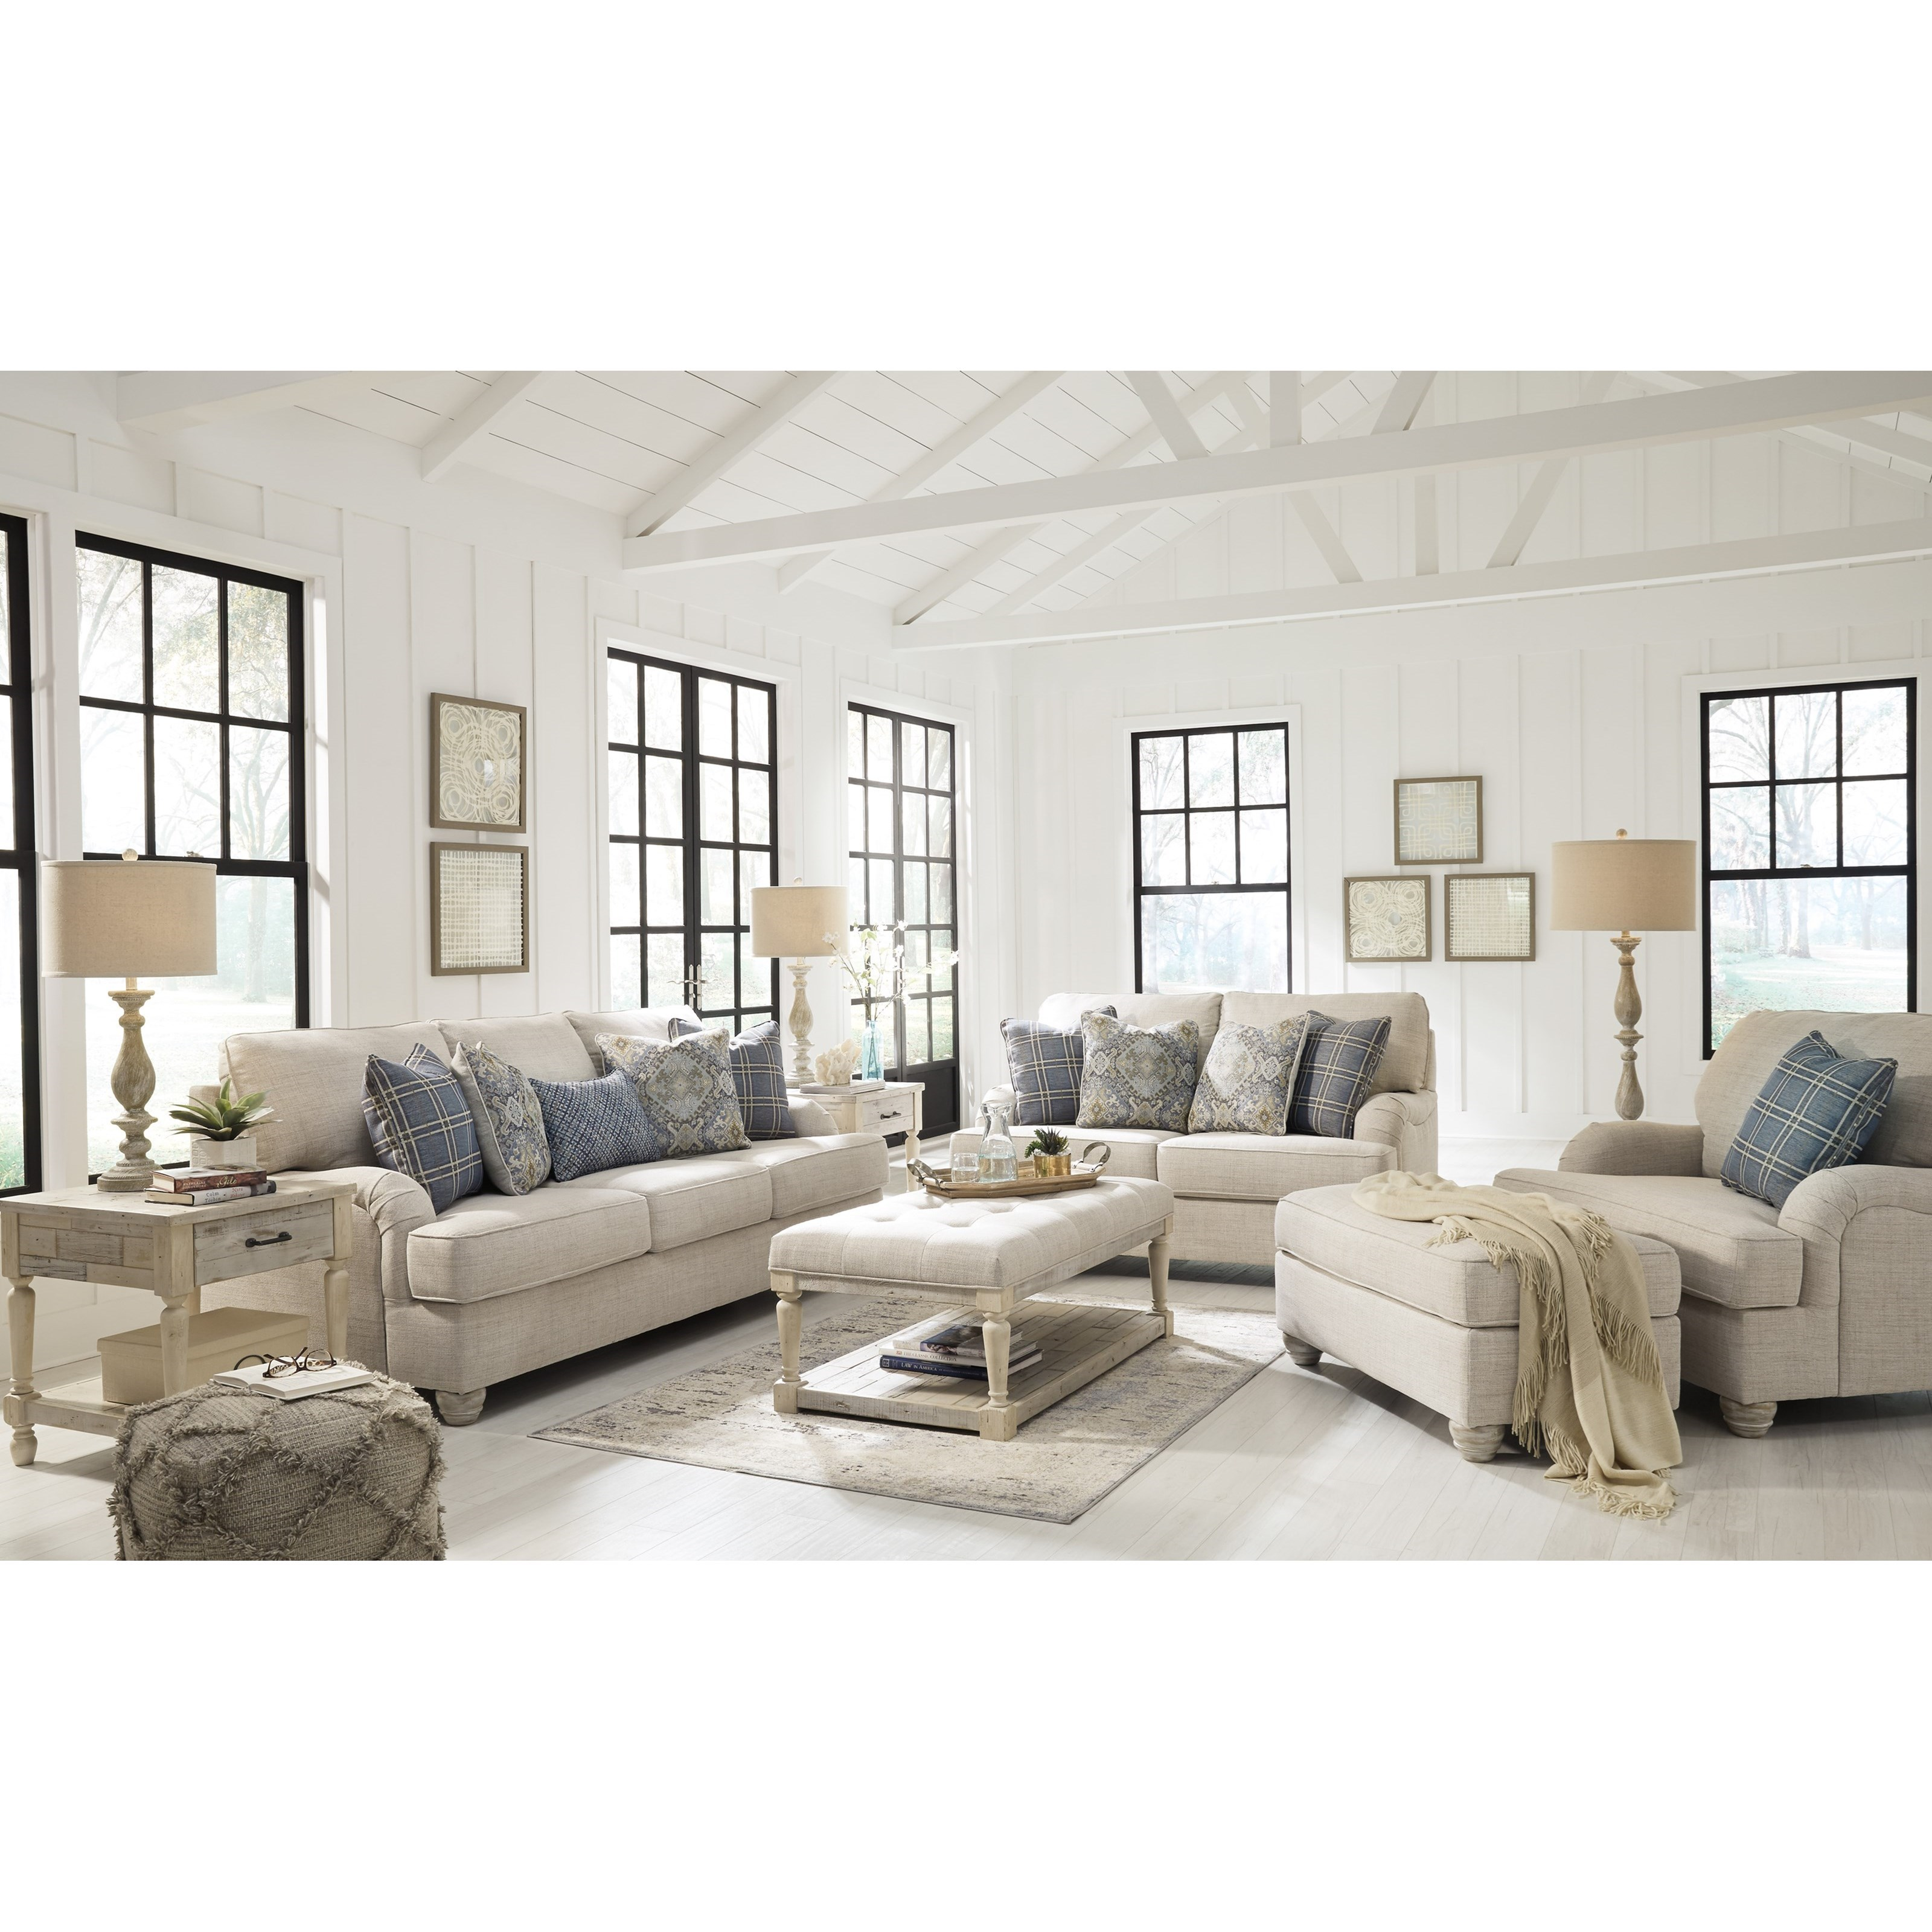 Benchcraft Traemore Stationary Living Room Group Value